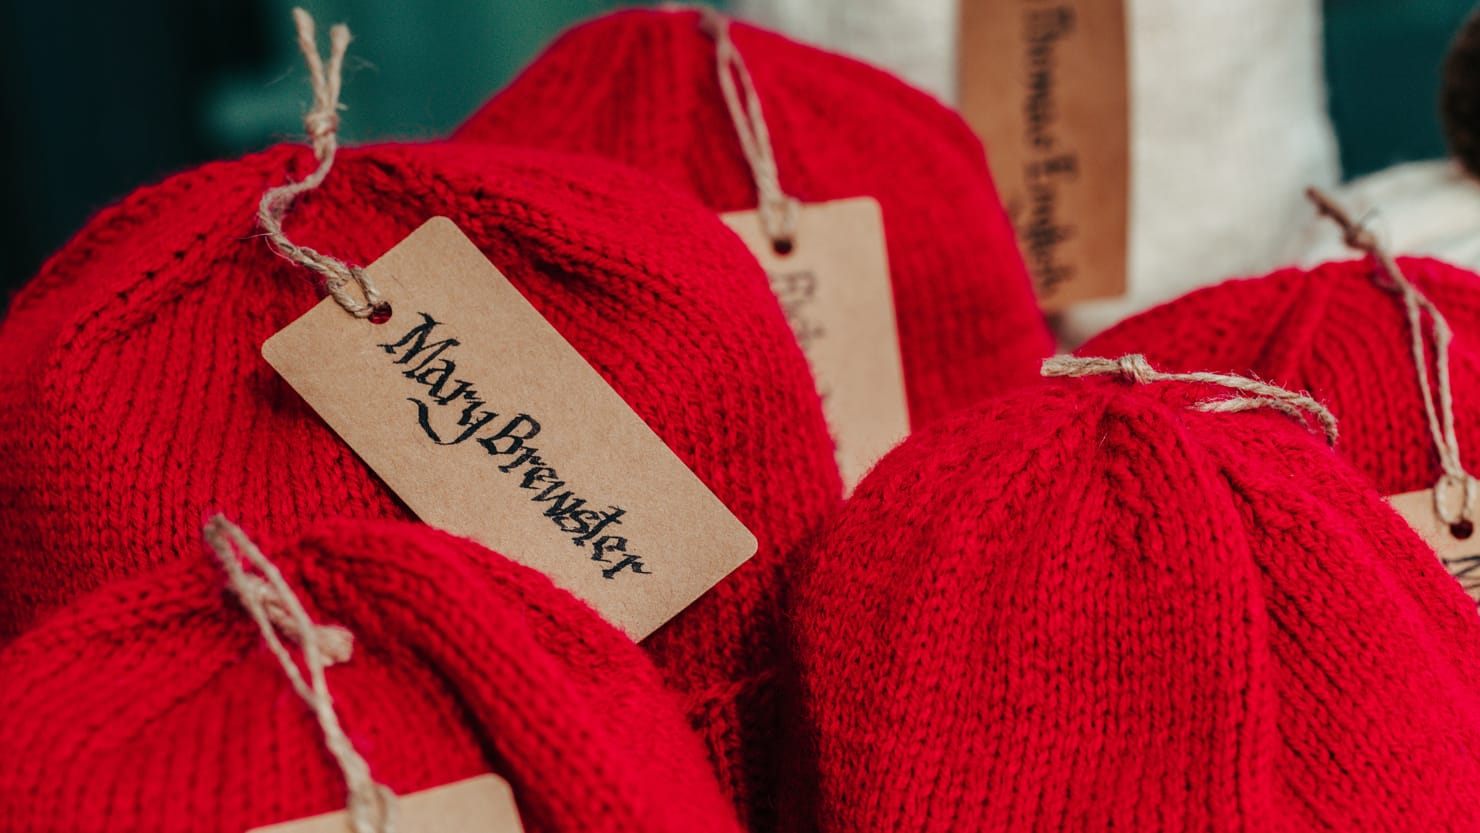 102 Mayflower hats for modern day seafarers in need